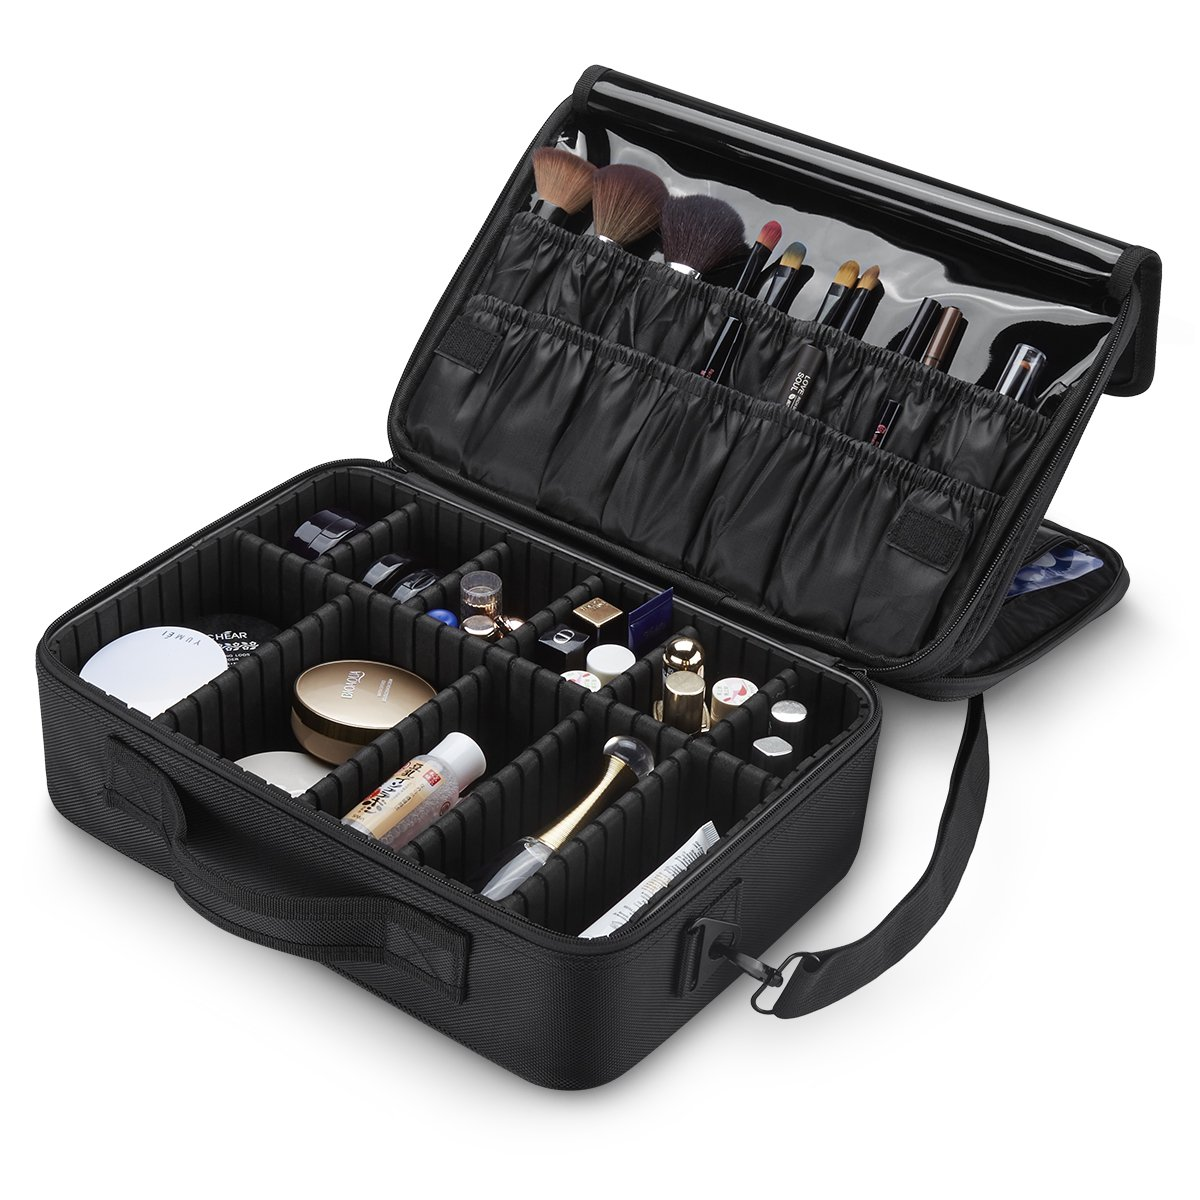 3 Layers Waterproof Makeup Travel Bag 15.1 Inch Makeup Train Case Makeup Bag Organizer with Adjustable Dividers for Cosmetics Makeup Brushes Jewelry Digital Accessories (Black-M) by LEPO (Image #1)